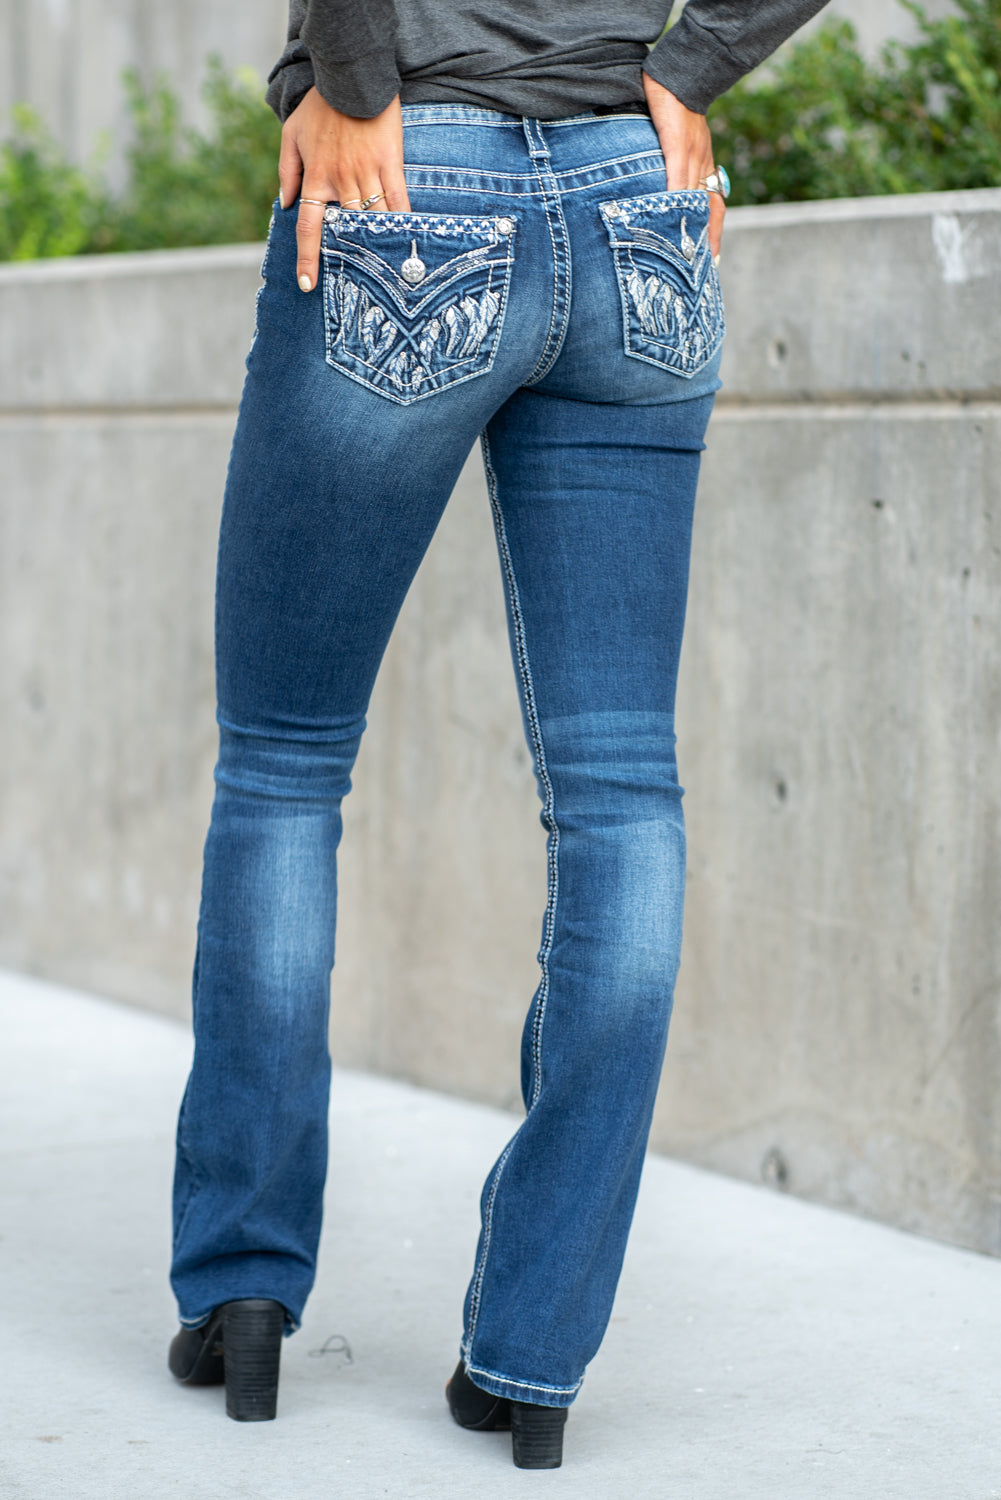 "Miss Me Collection: Fall 2020 Wash: Dark Blue Inseam: 34"" Boot Cut 91% Cotton, 6% Polyester, 3% Elastane Sequin Trim and Rhinestone Rivets Mid Rise, 8.75"" Front Rise Embellished Feather Full Pocket Style #: M3643B Contact us for any additional measurements or sizing.  Taylor is 5'7"" and wears a size 3 in jeans, small top and an 8.5 in shoes. She is wearing a size 25 in these jeans."